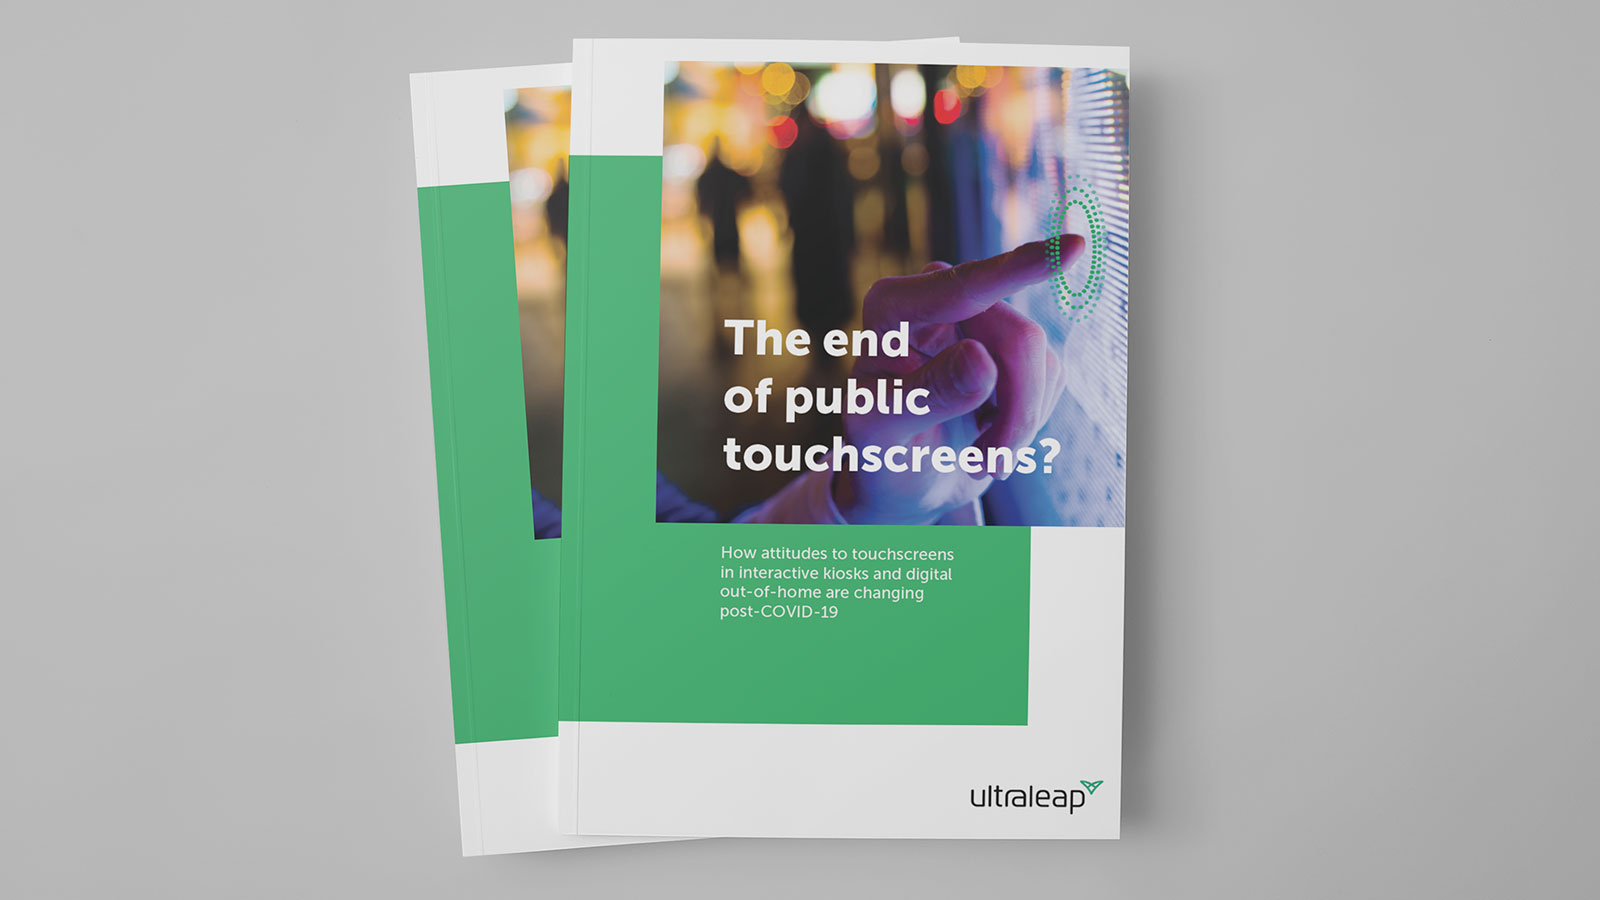 Ultraleap contactless public touchscreens whitepaper cover